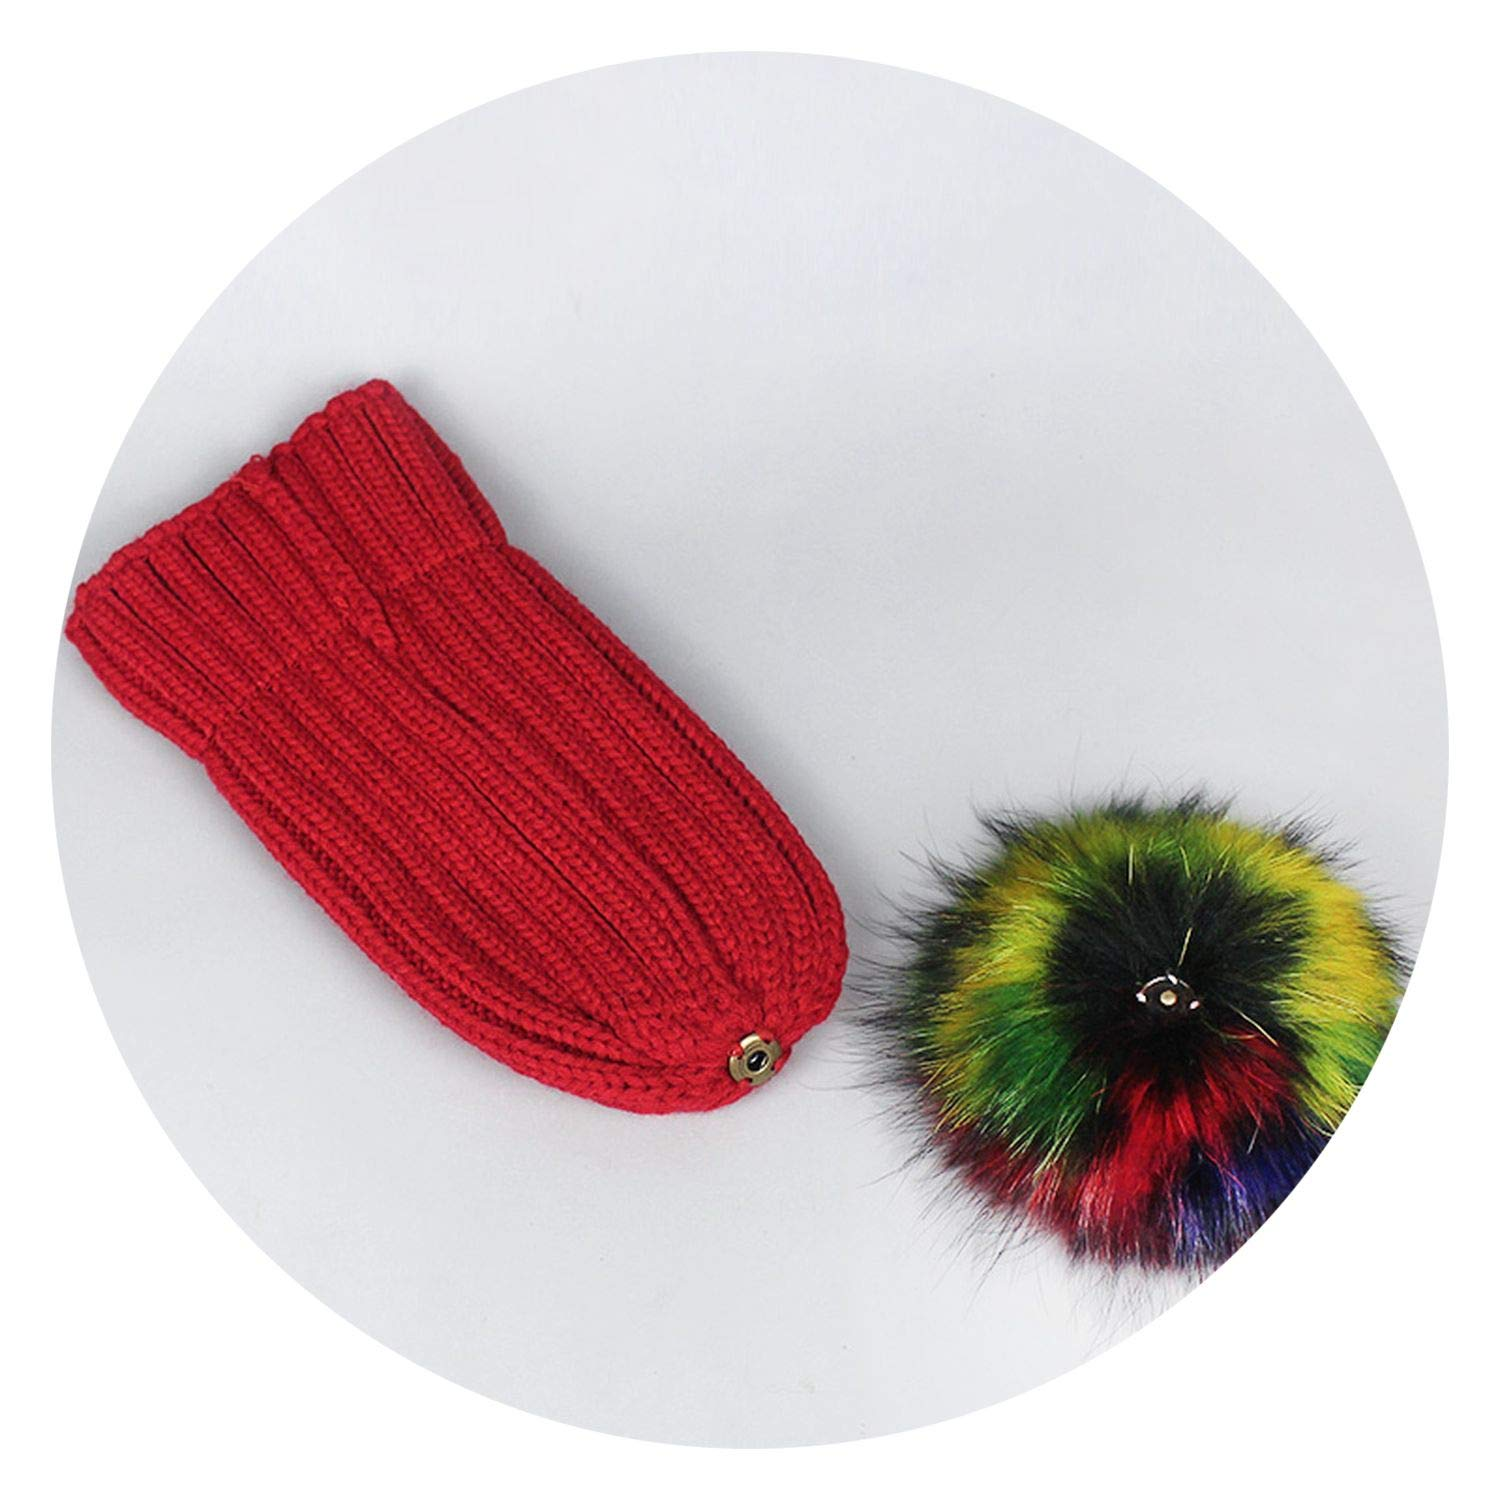 Hat Casual Crful Pom Pom Beanies Girls Pompon Fe Winter Warm Knit Skullies,Scarf Coffee,